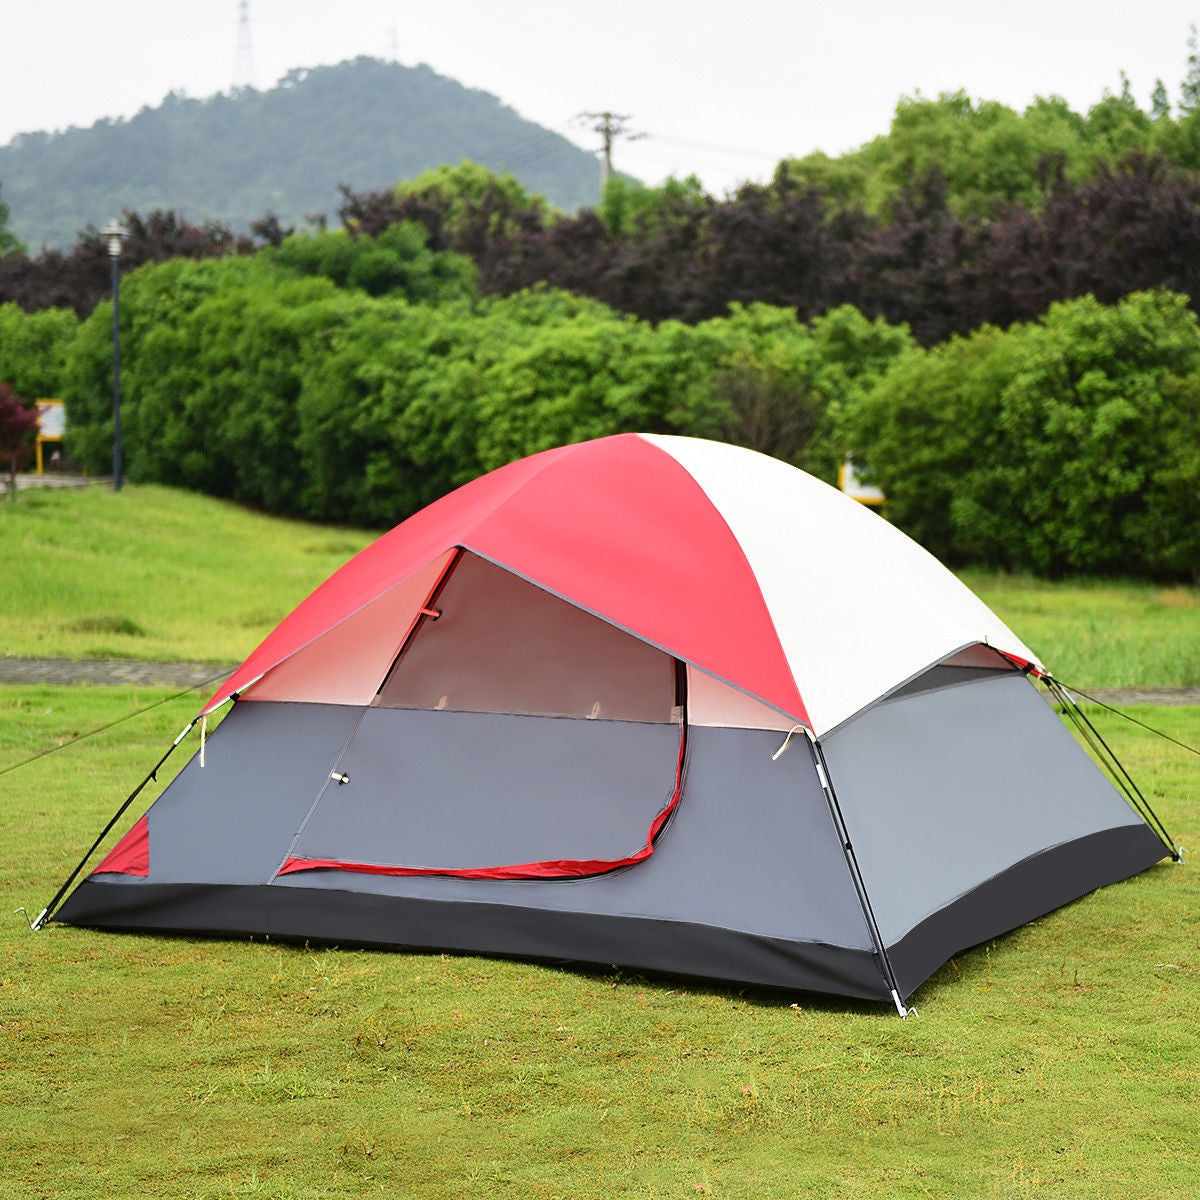 4 person camping tent waterproof windproof